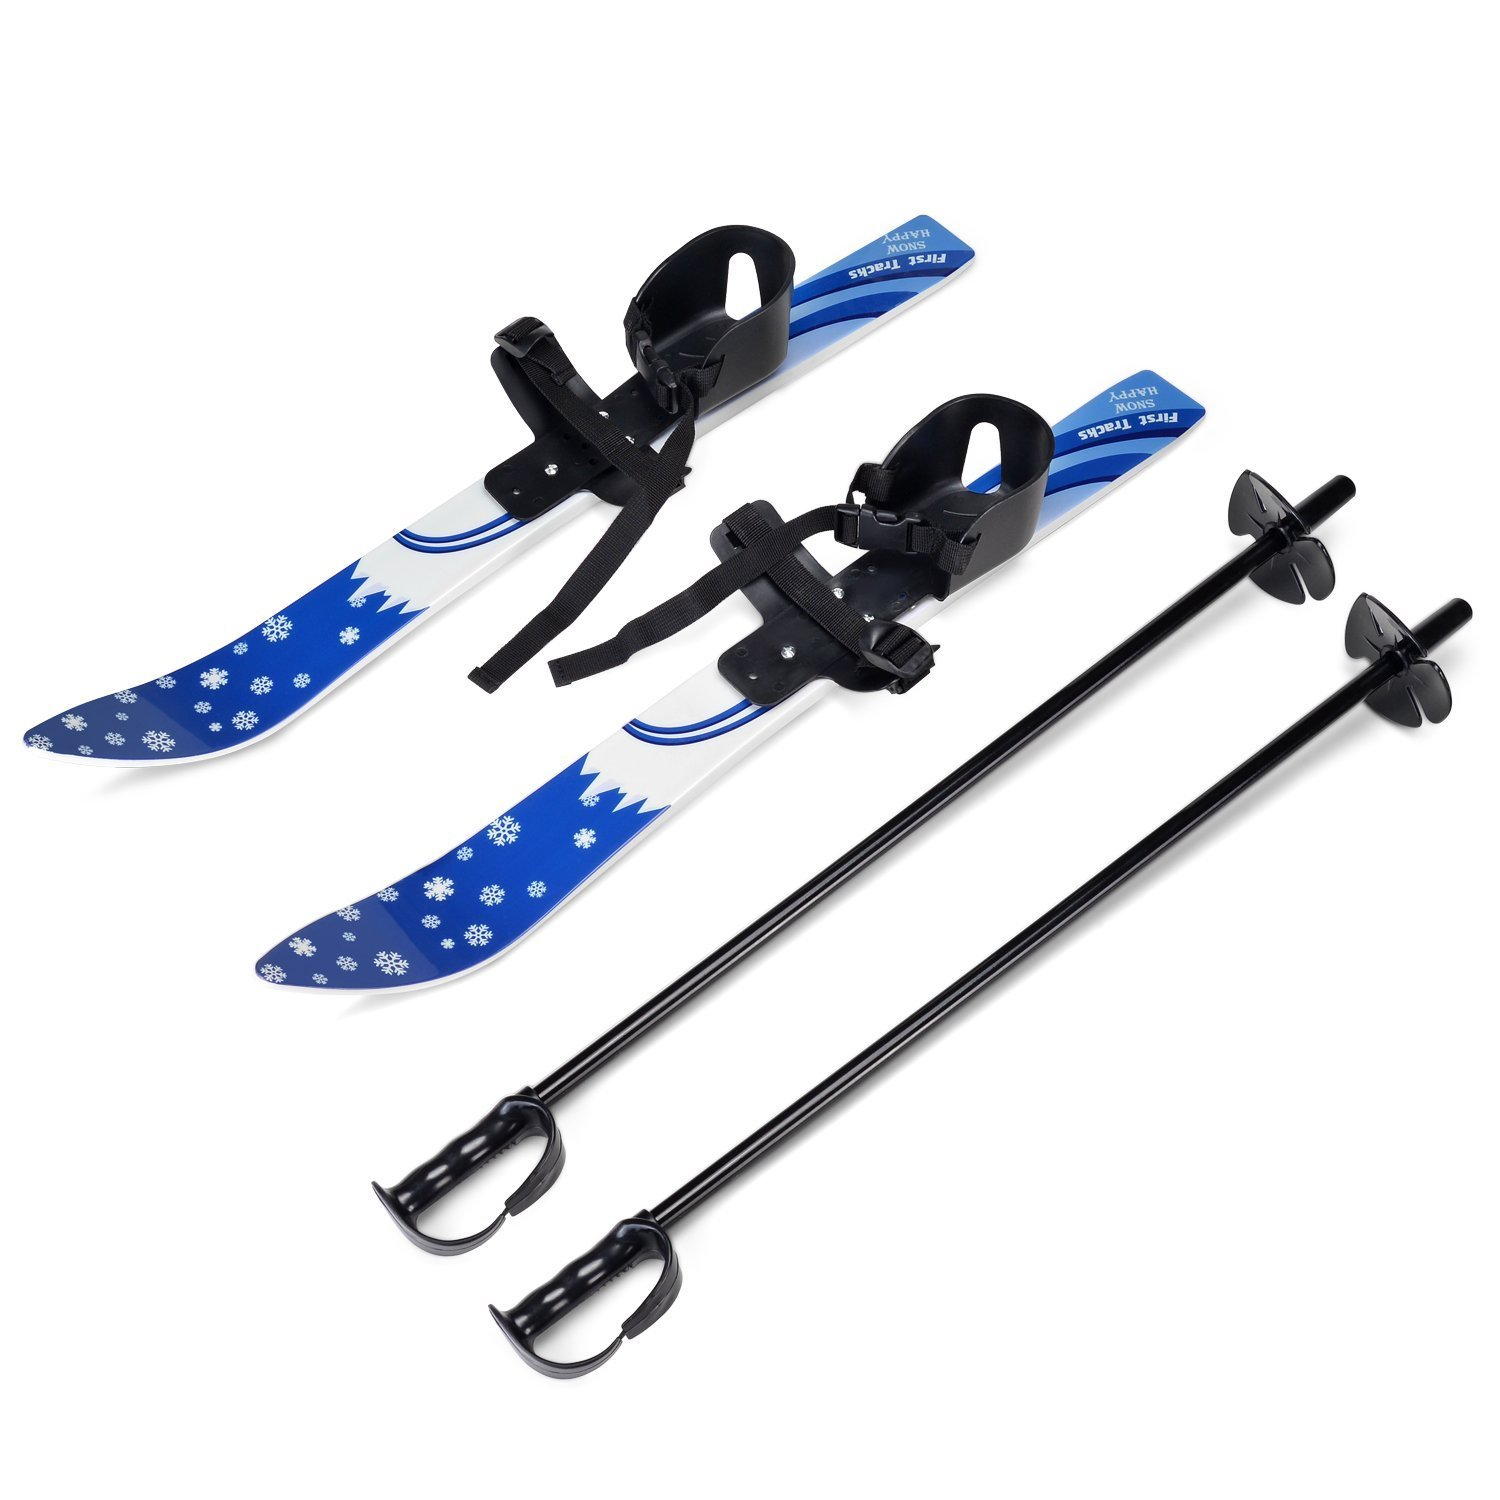 Odoland Kid's Beginner Snow Skis and Poles, Low-Resistant Ski Boards for Age 4 and Under, Snowflake by Odoland